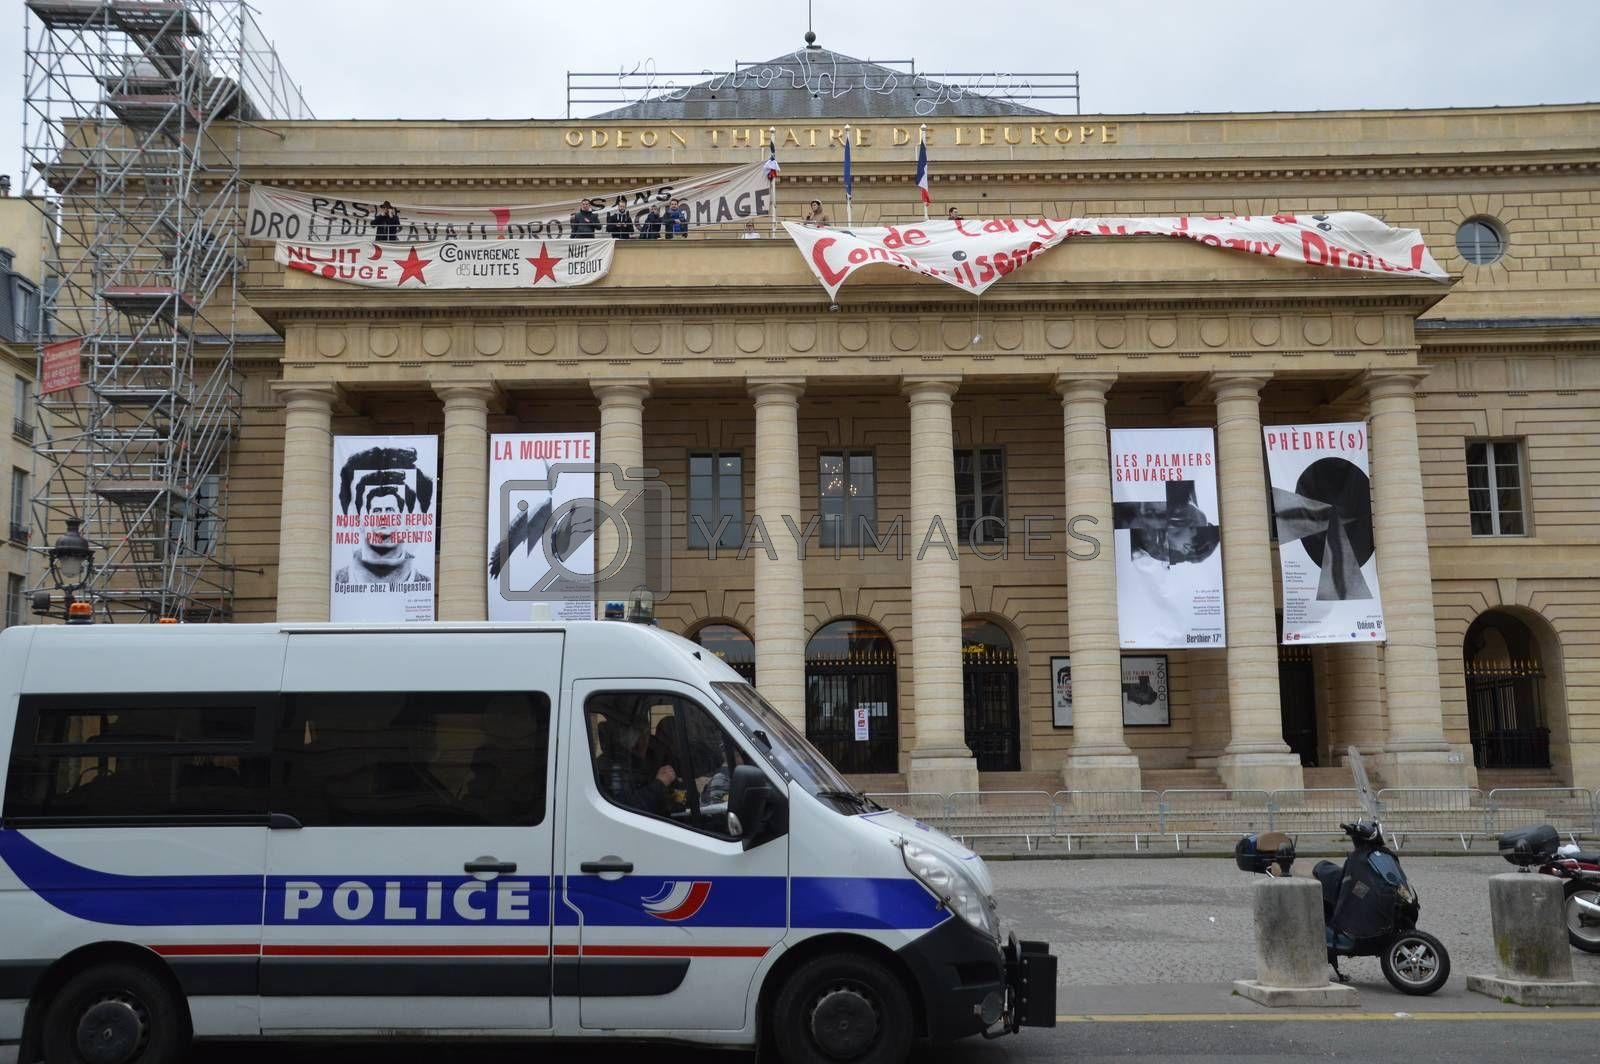 FRANCE, Paris : Policemen stand guard outside the Odeon theatre as French artists and entertainment workers known in France as intermittents du spectacle occupy the building and display a banner reading There is money, let's build new rights in Paris on April 25, 2016. Around 50 people occupied the building to protest against the French government's proposed labour reforms and to demand the reshaping of the unemployment insurance before the start of the unemployment insurance negotiations, as part of a protest in conjunction with the Nuit Debout (Night Rising) movement against the French government's proposed labour reforms.